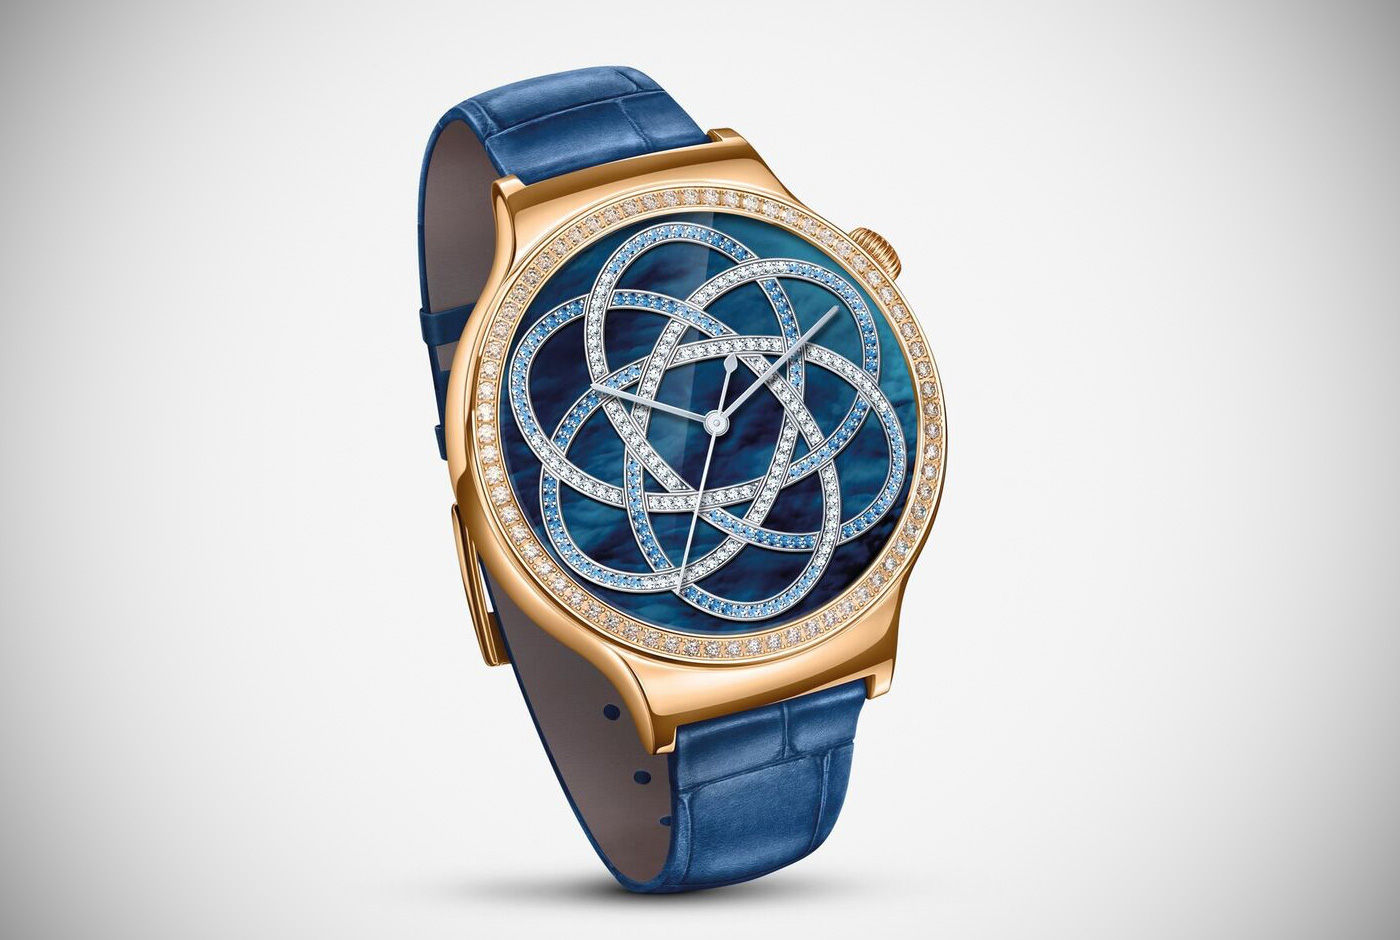 Huawei reveals two new Watch models for the ladies